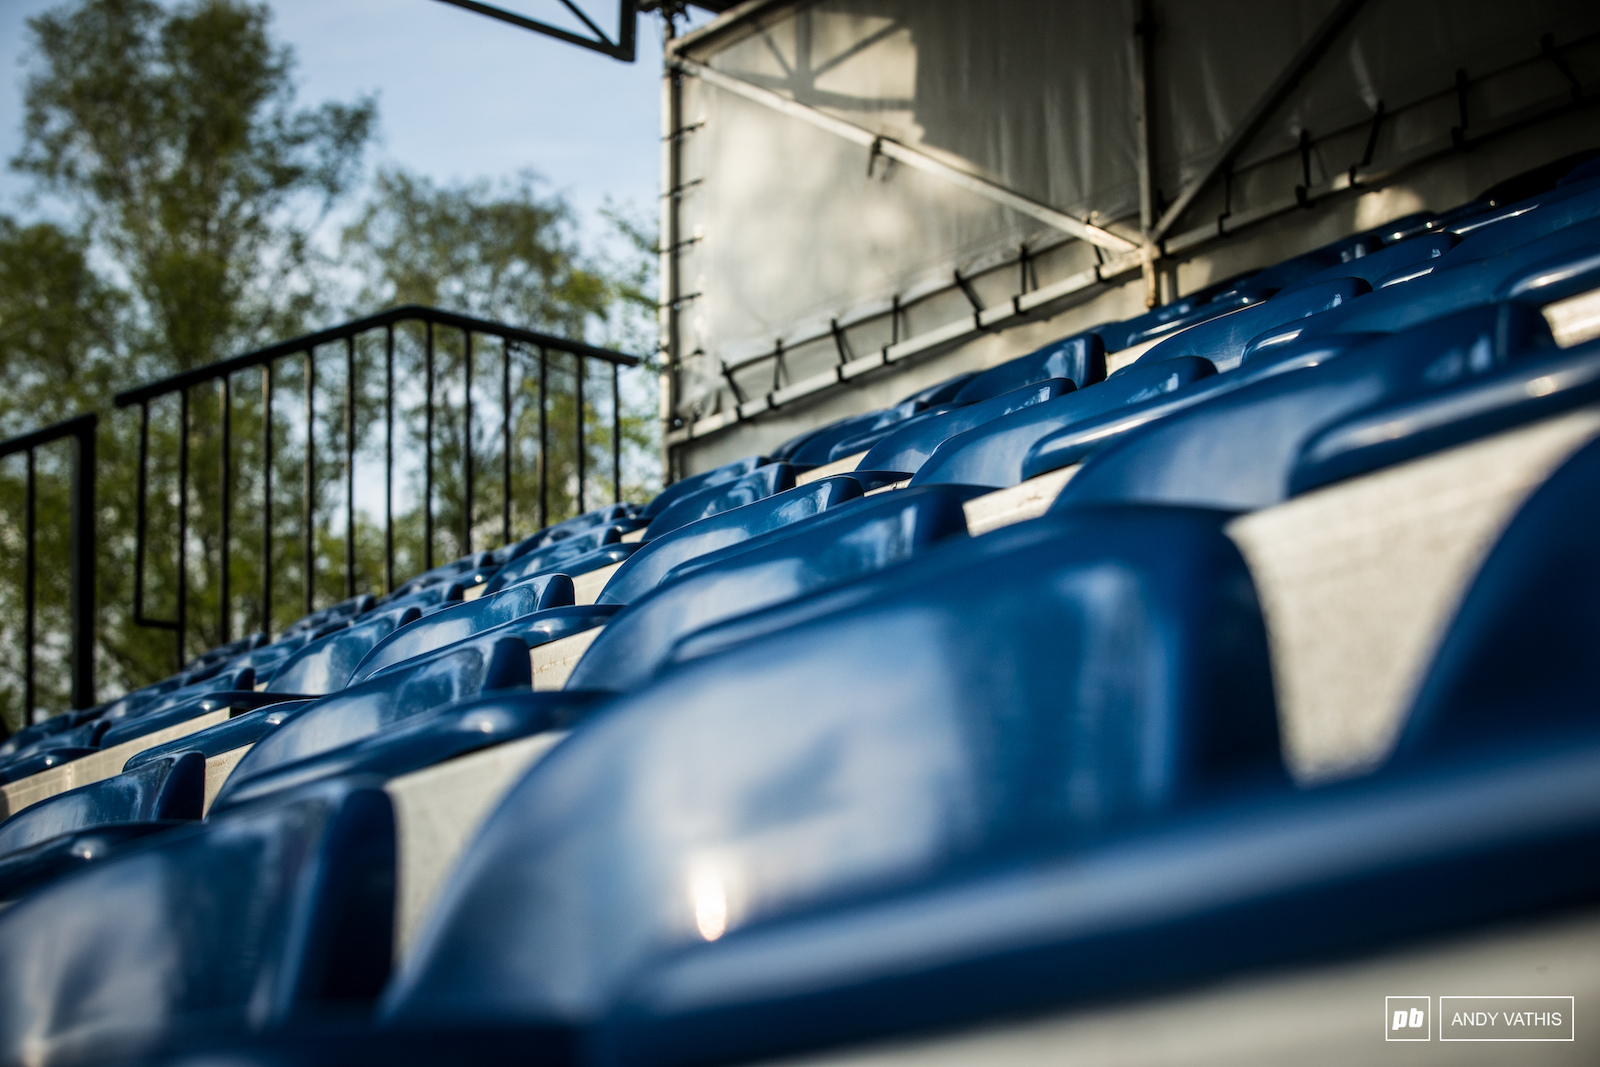 Rain or shine we expect these seats to be full this weekend.